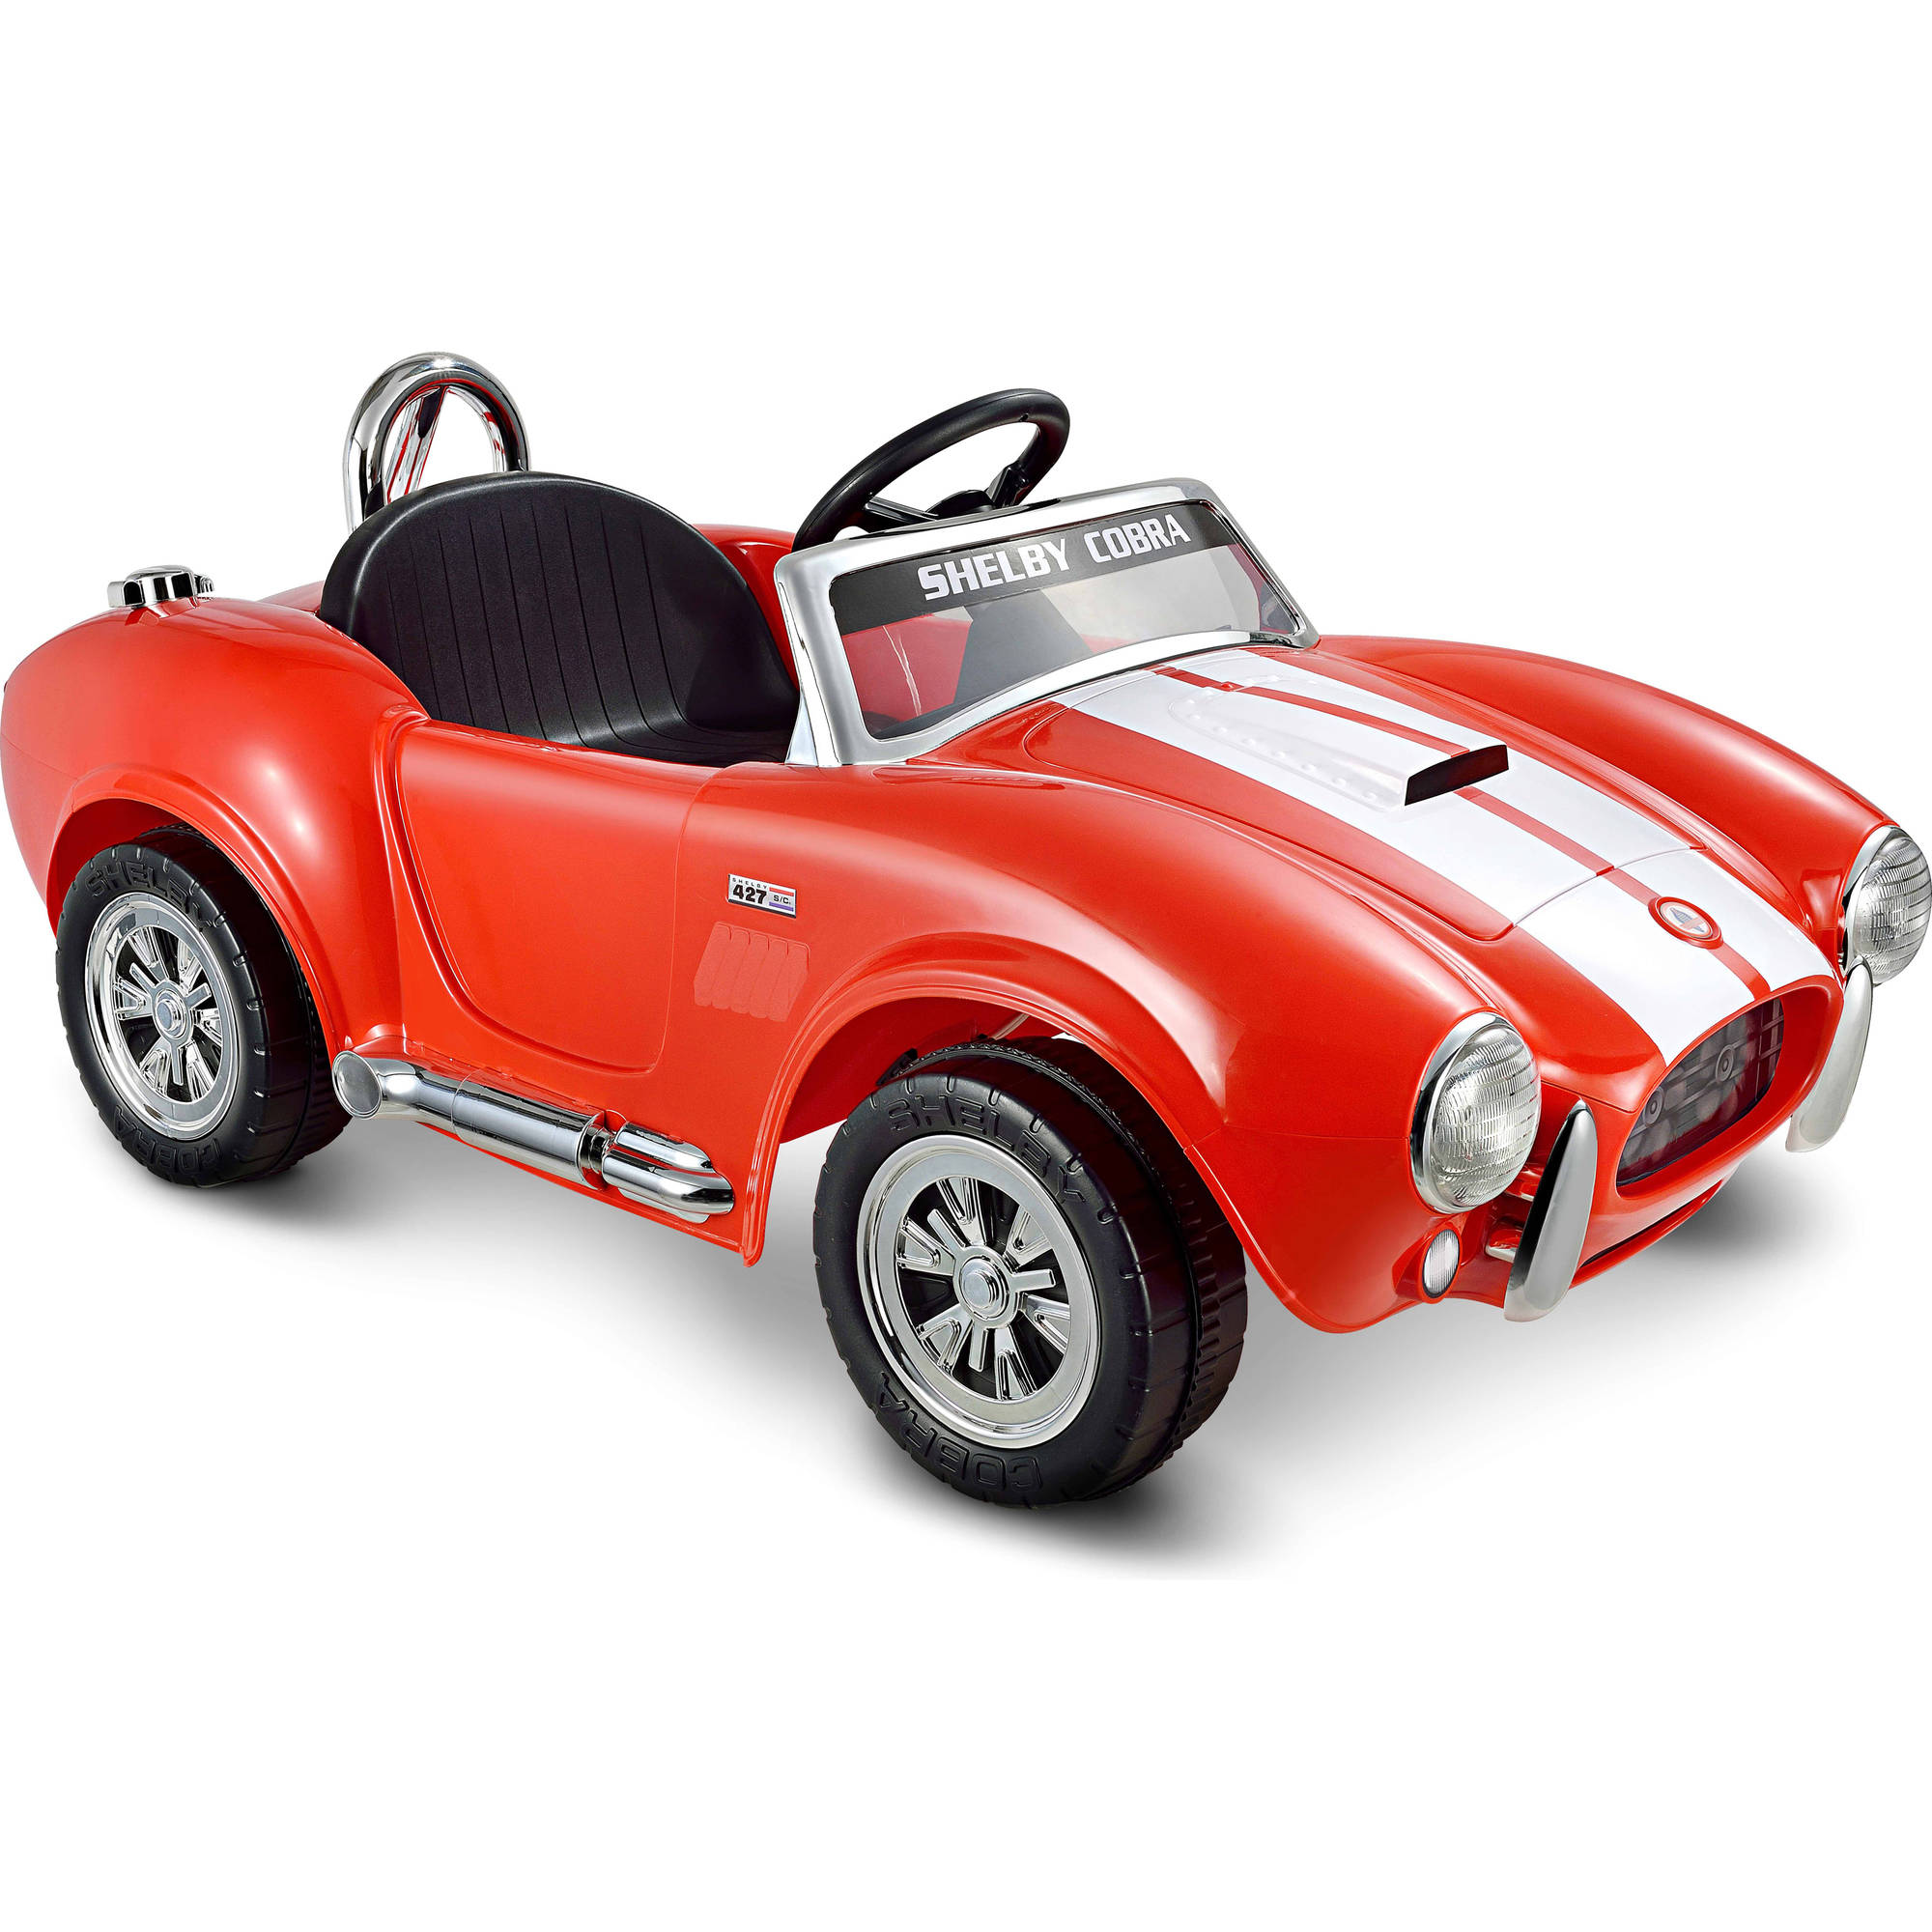 Kid Motorz 12V Shelby Cobra 427S/C Ride On